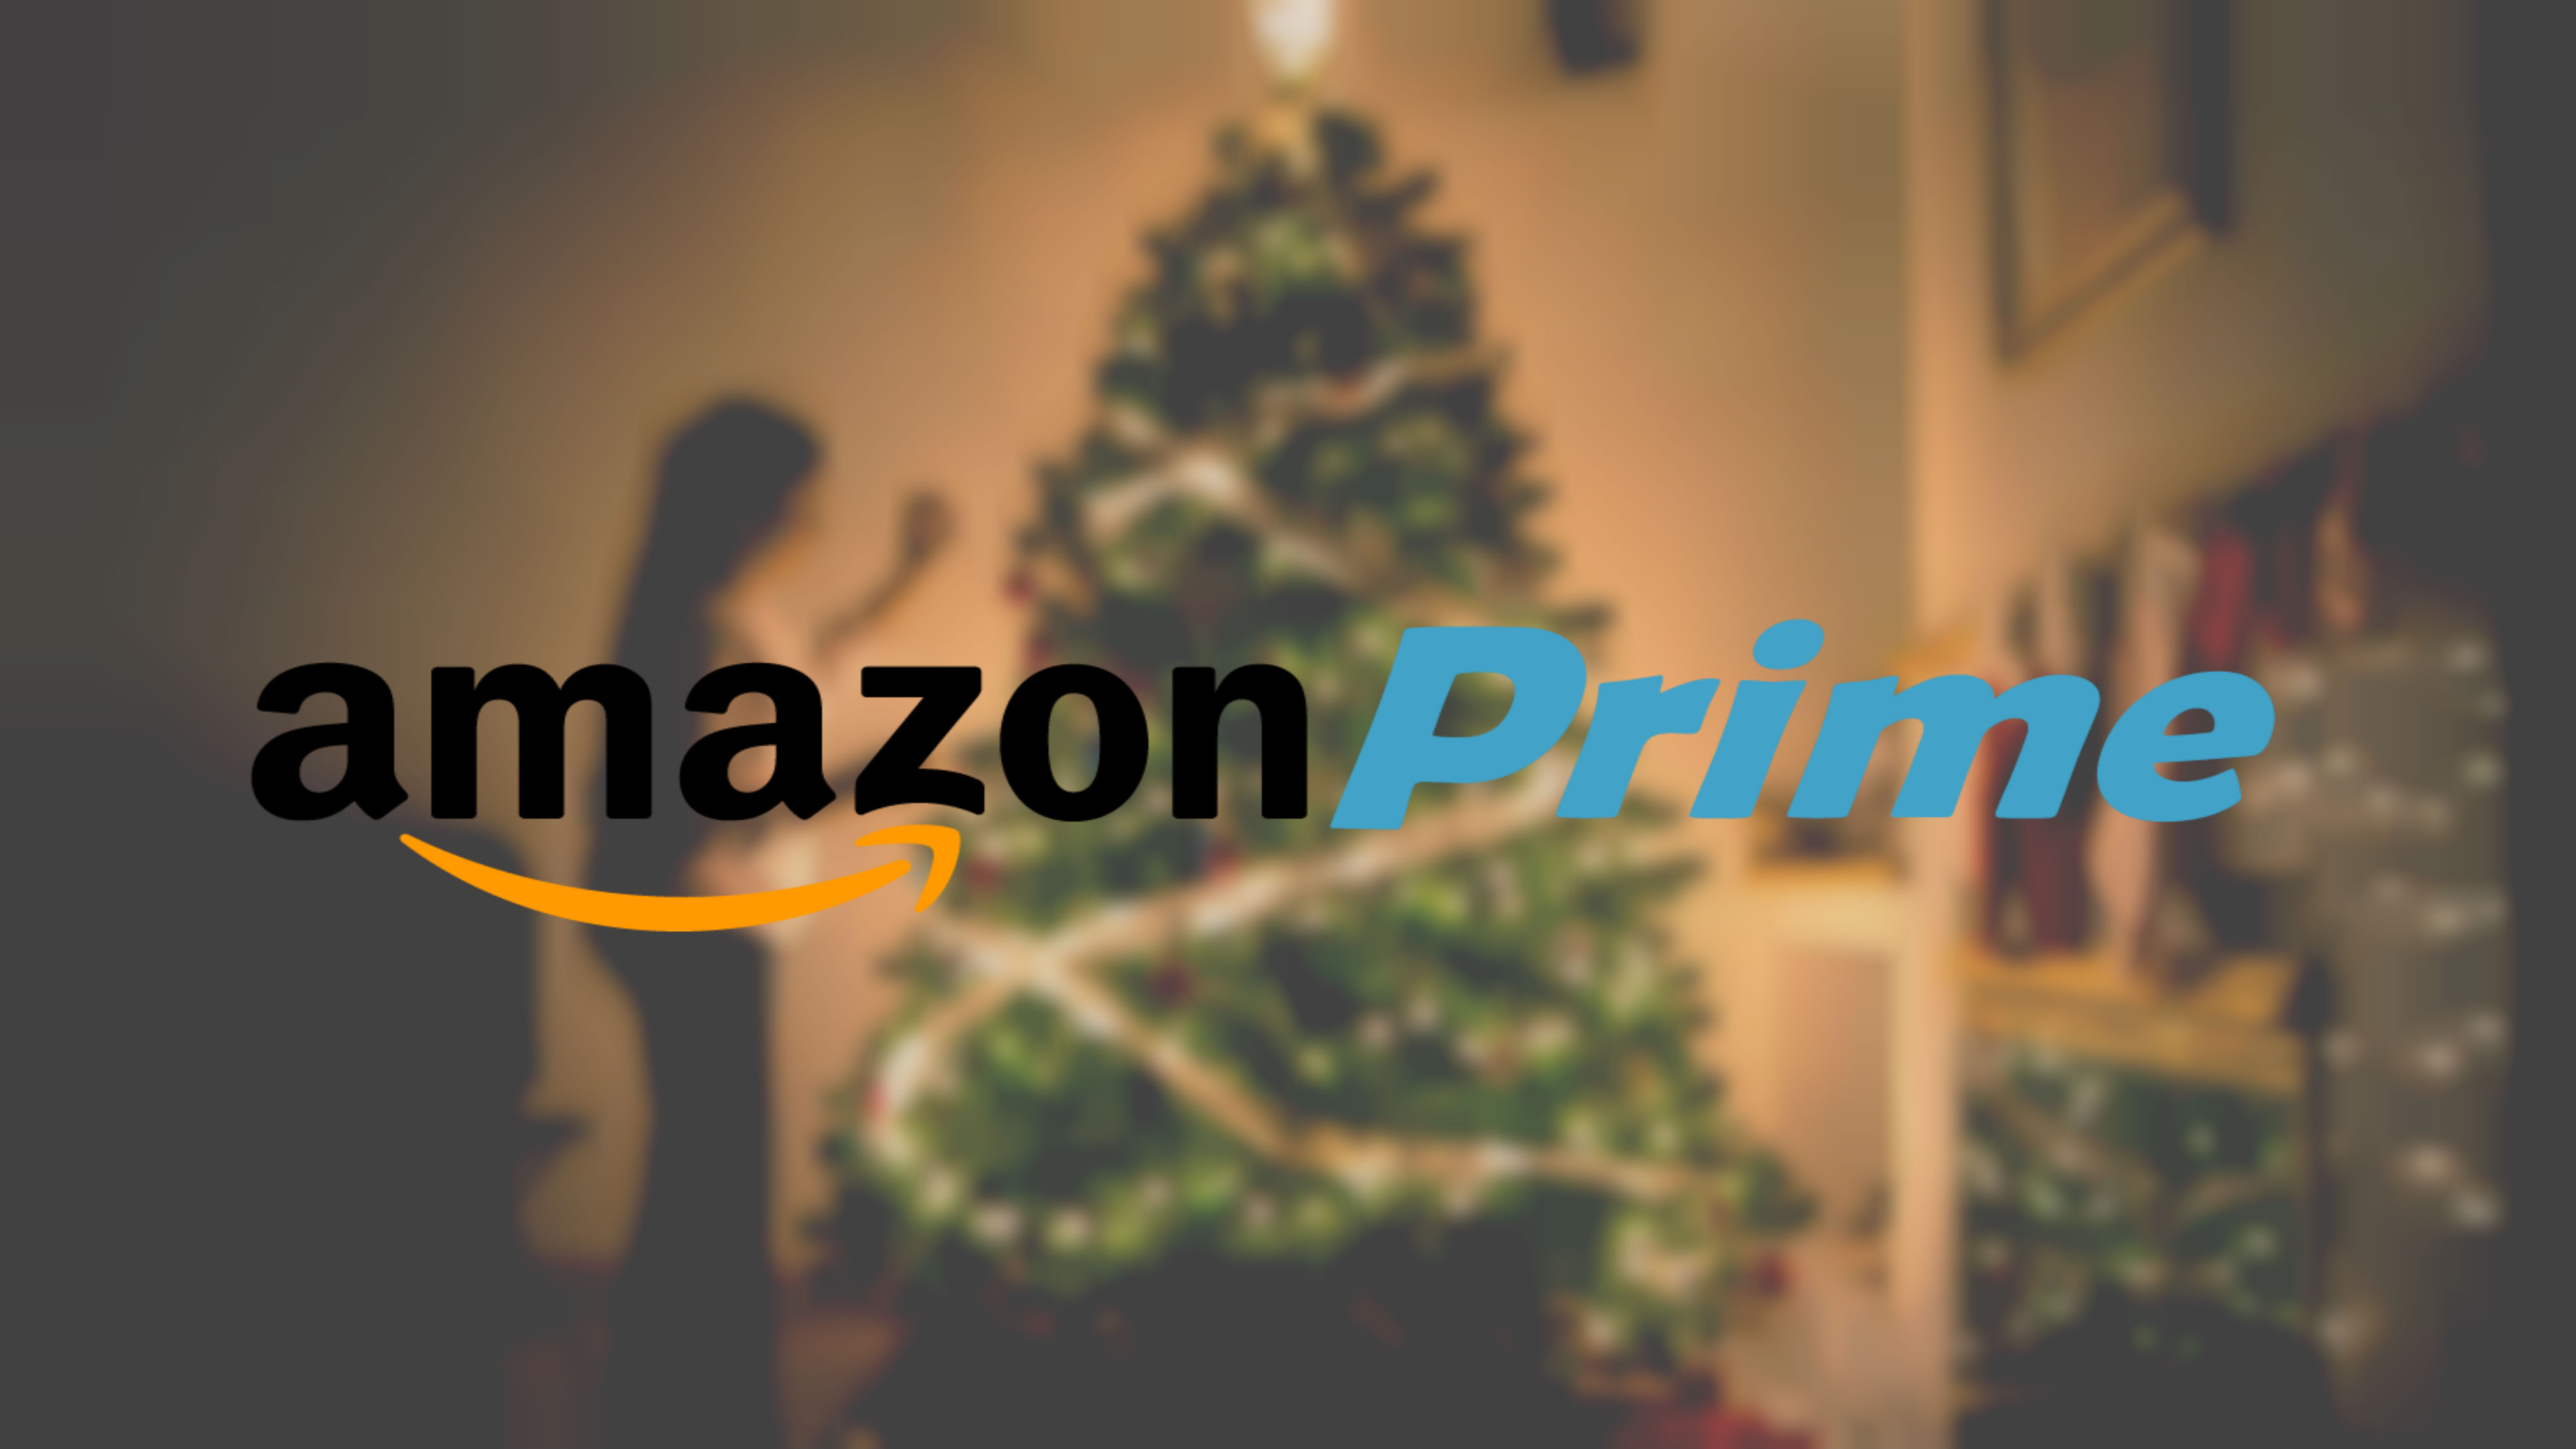 Amazon will be selling entire seven foot trees this christmas